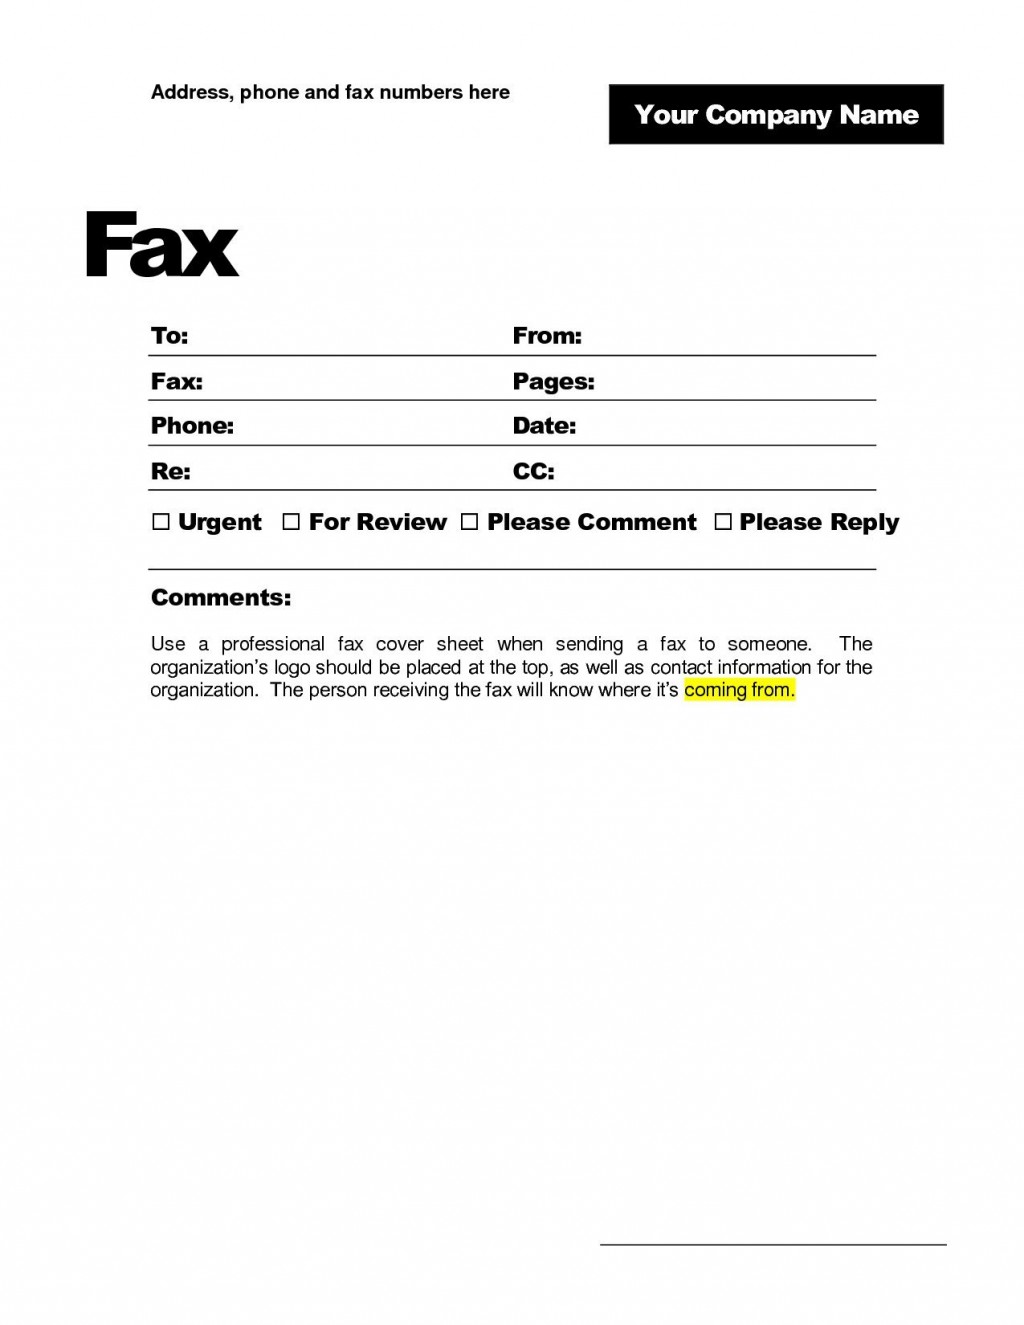 000 Breathtaking Fax Template Microsoft Word Inspiration  Cover Sheet 2010 Letter BusinesLarge